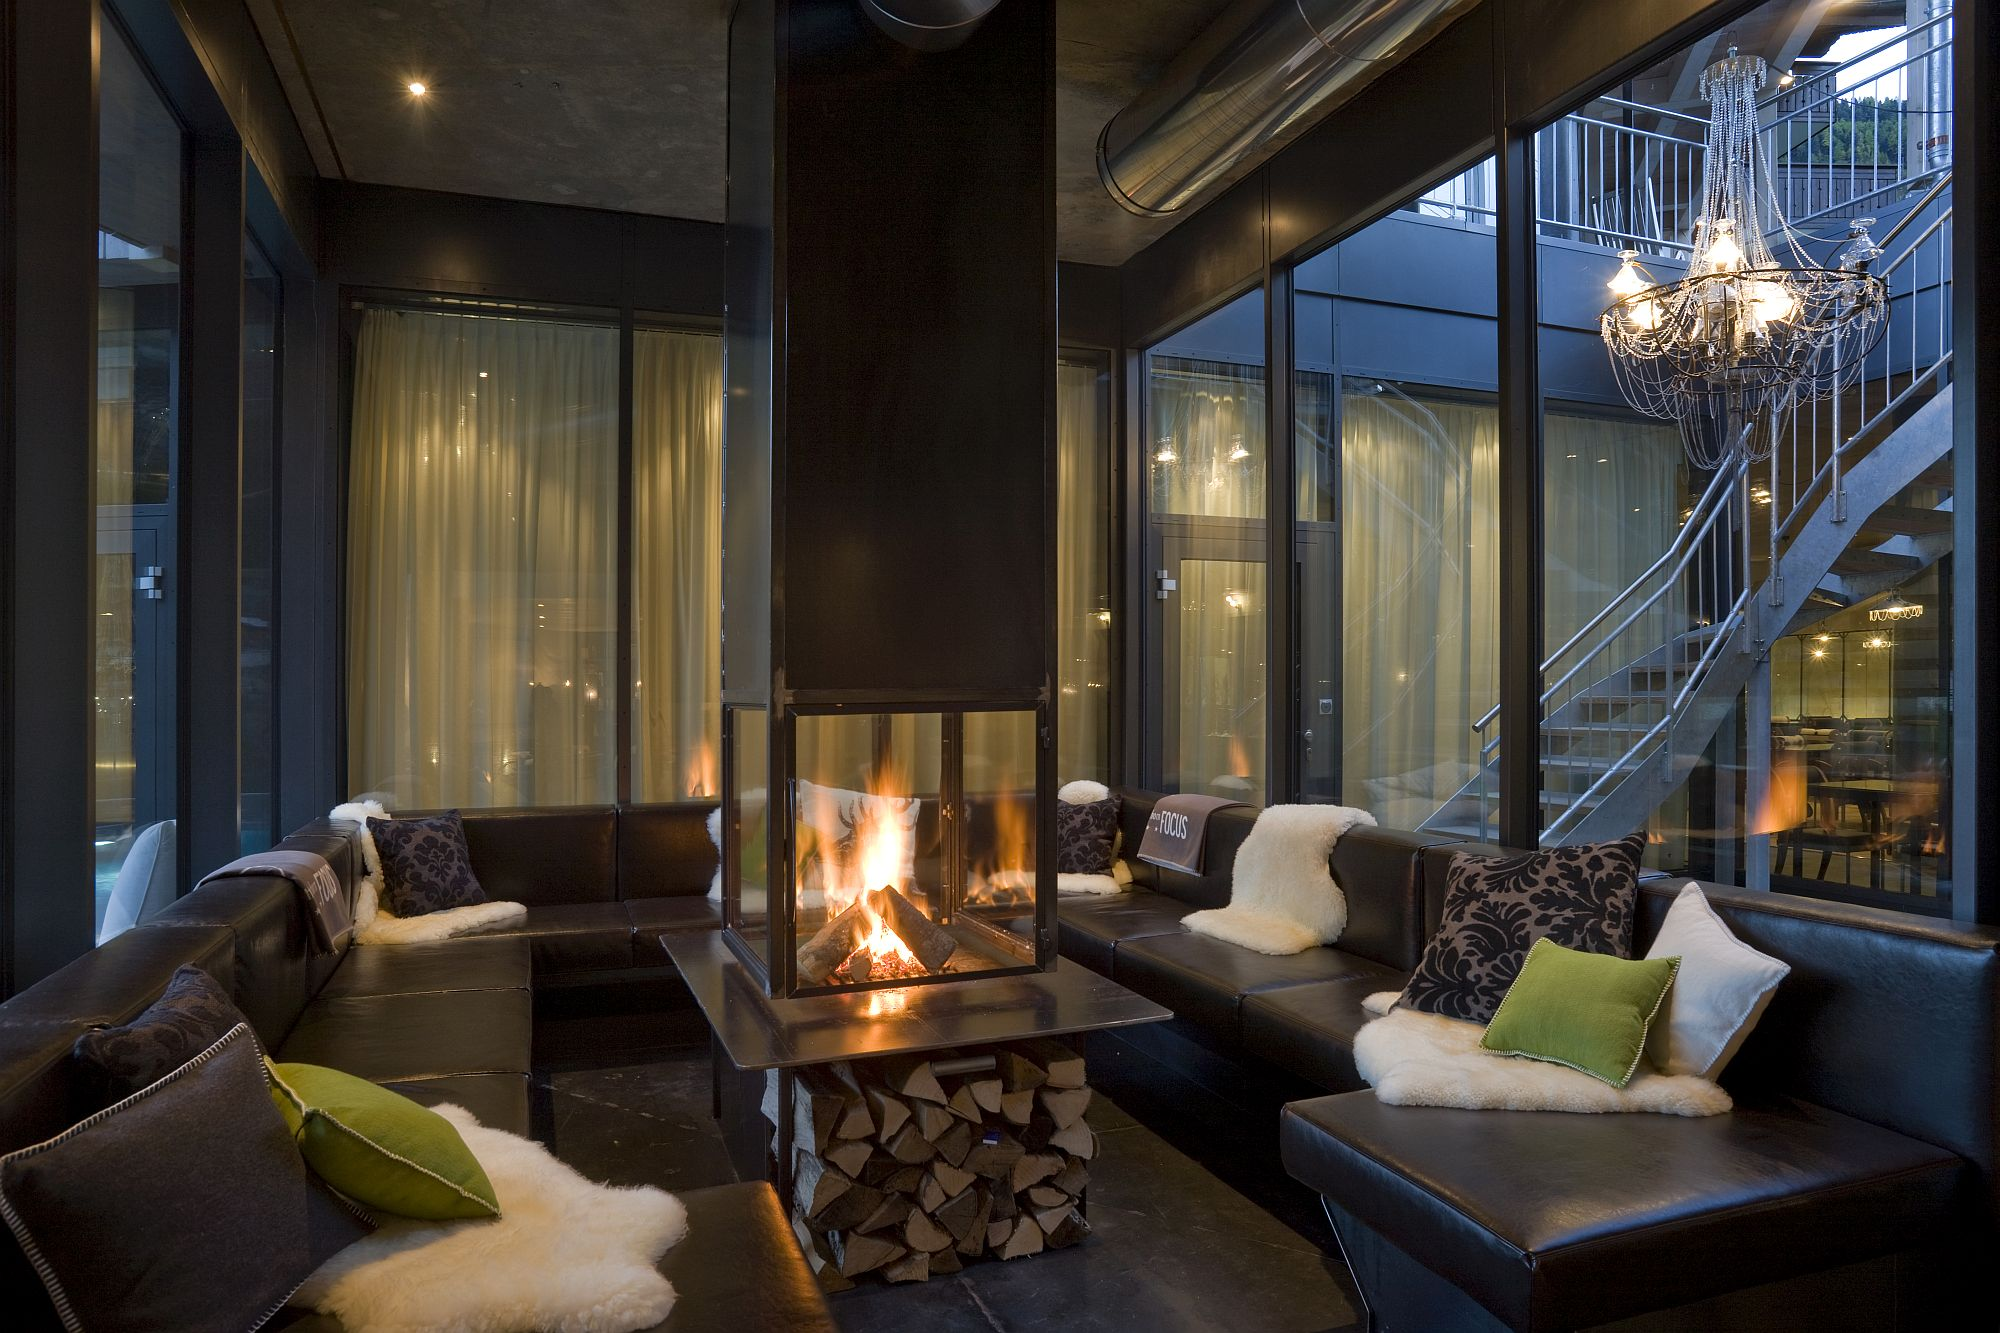 Lounge in style at Hotel Matterhorn Focus